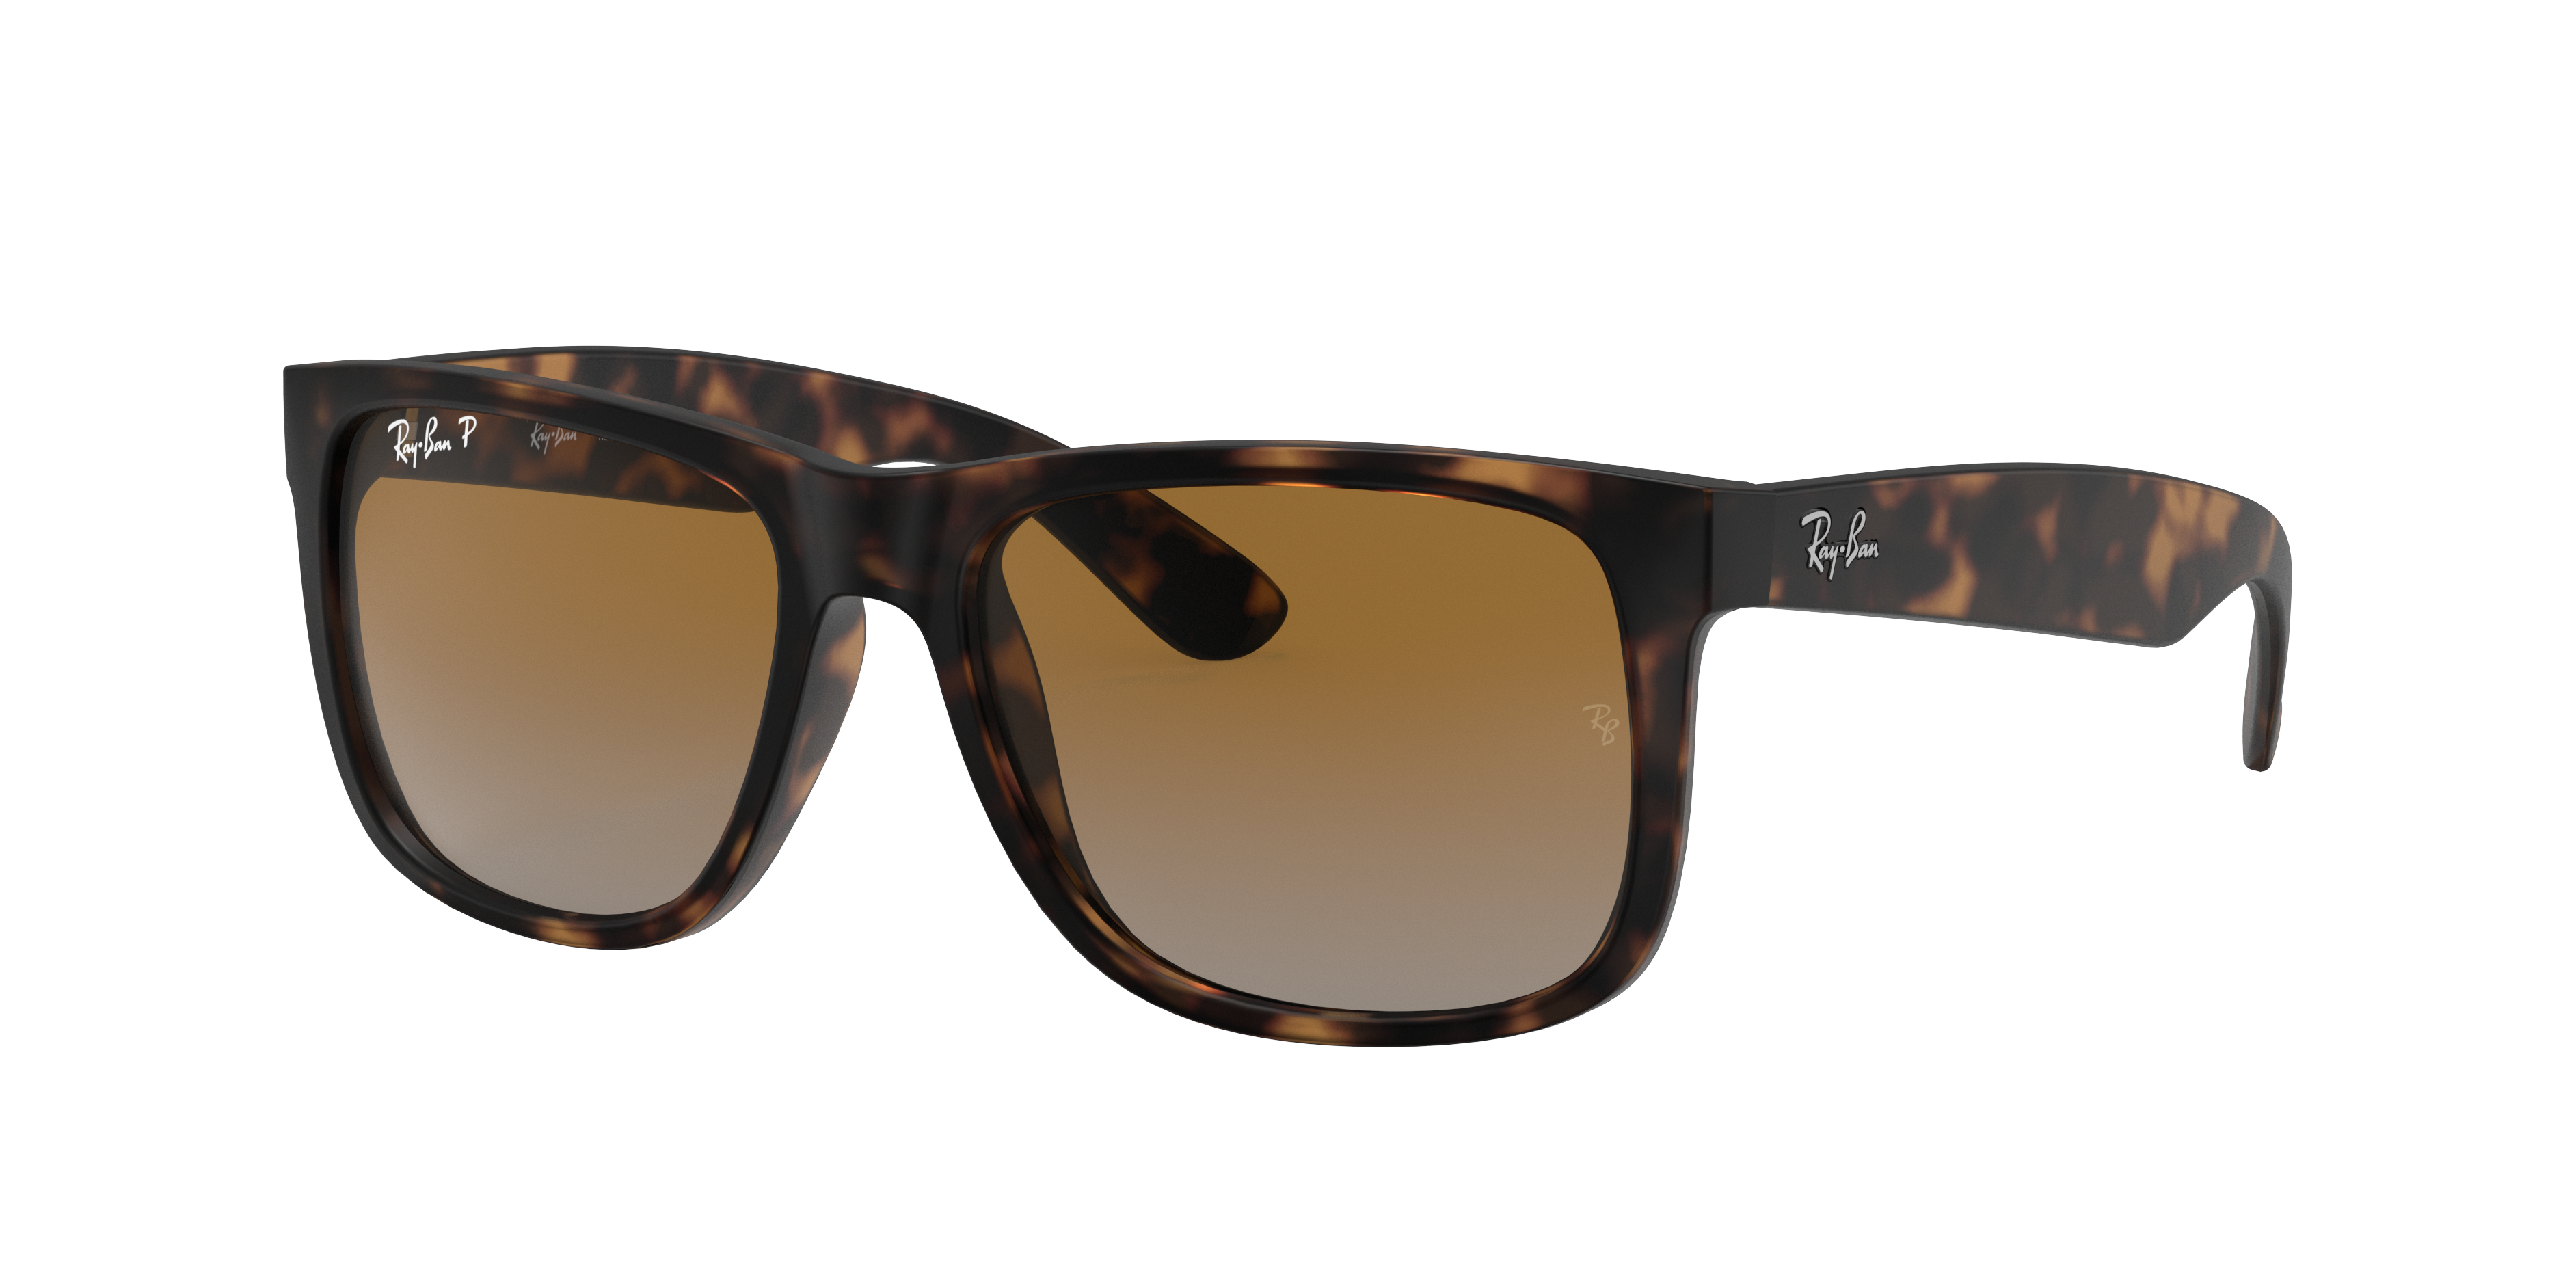 Ray-Ban Justin Classic Tortoise, Polarized Brown Lenses - RB4165